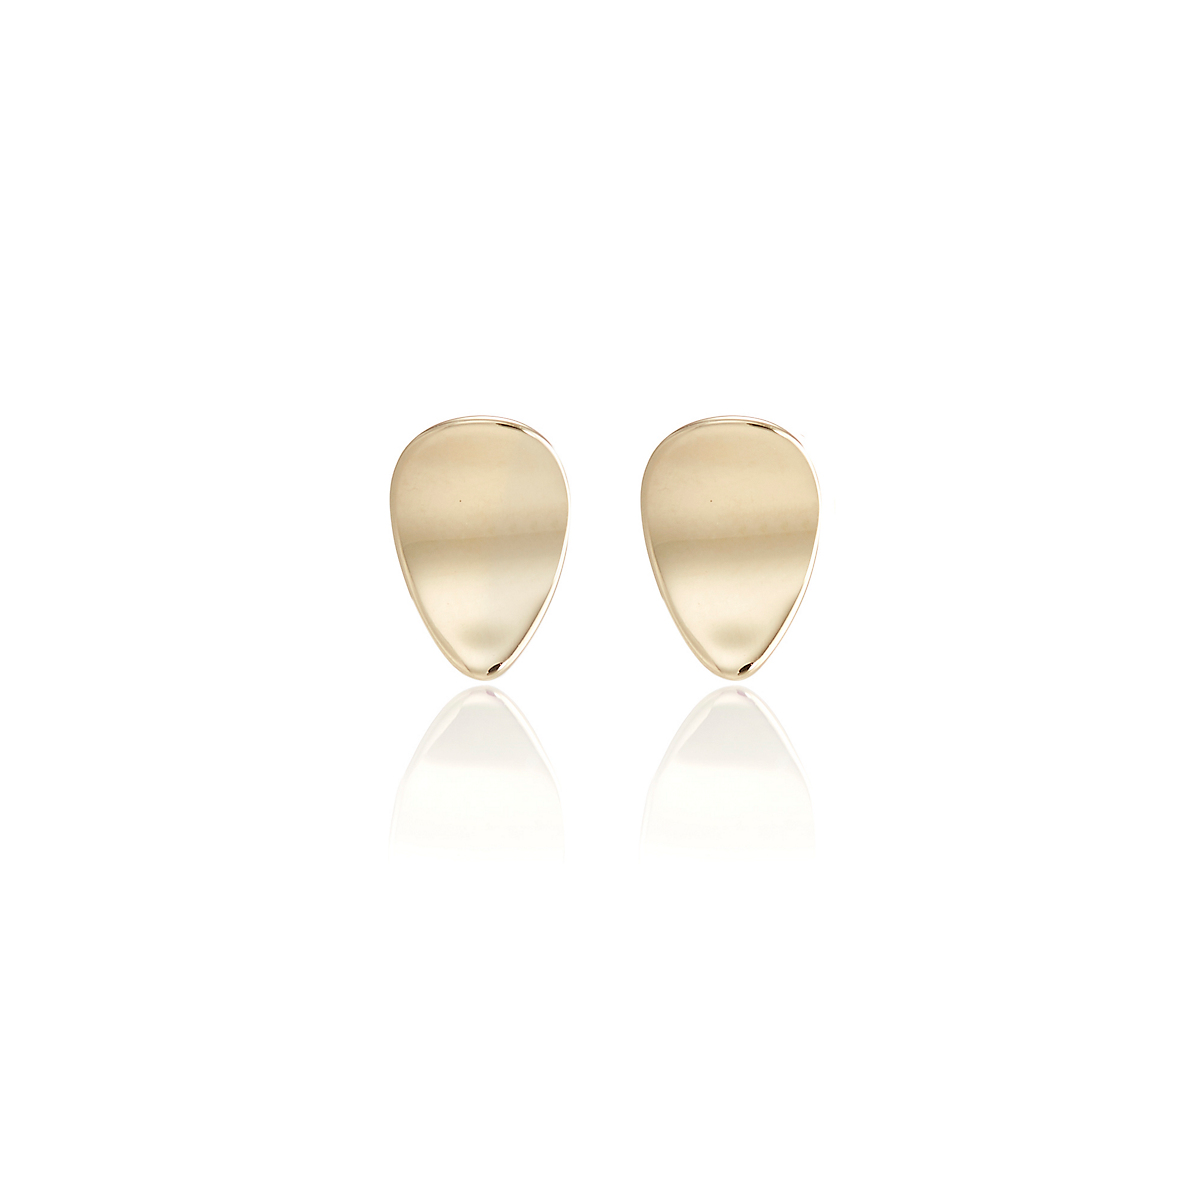 Gump's Petite Concave Petal Stud Earrings